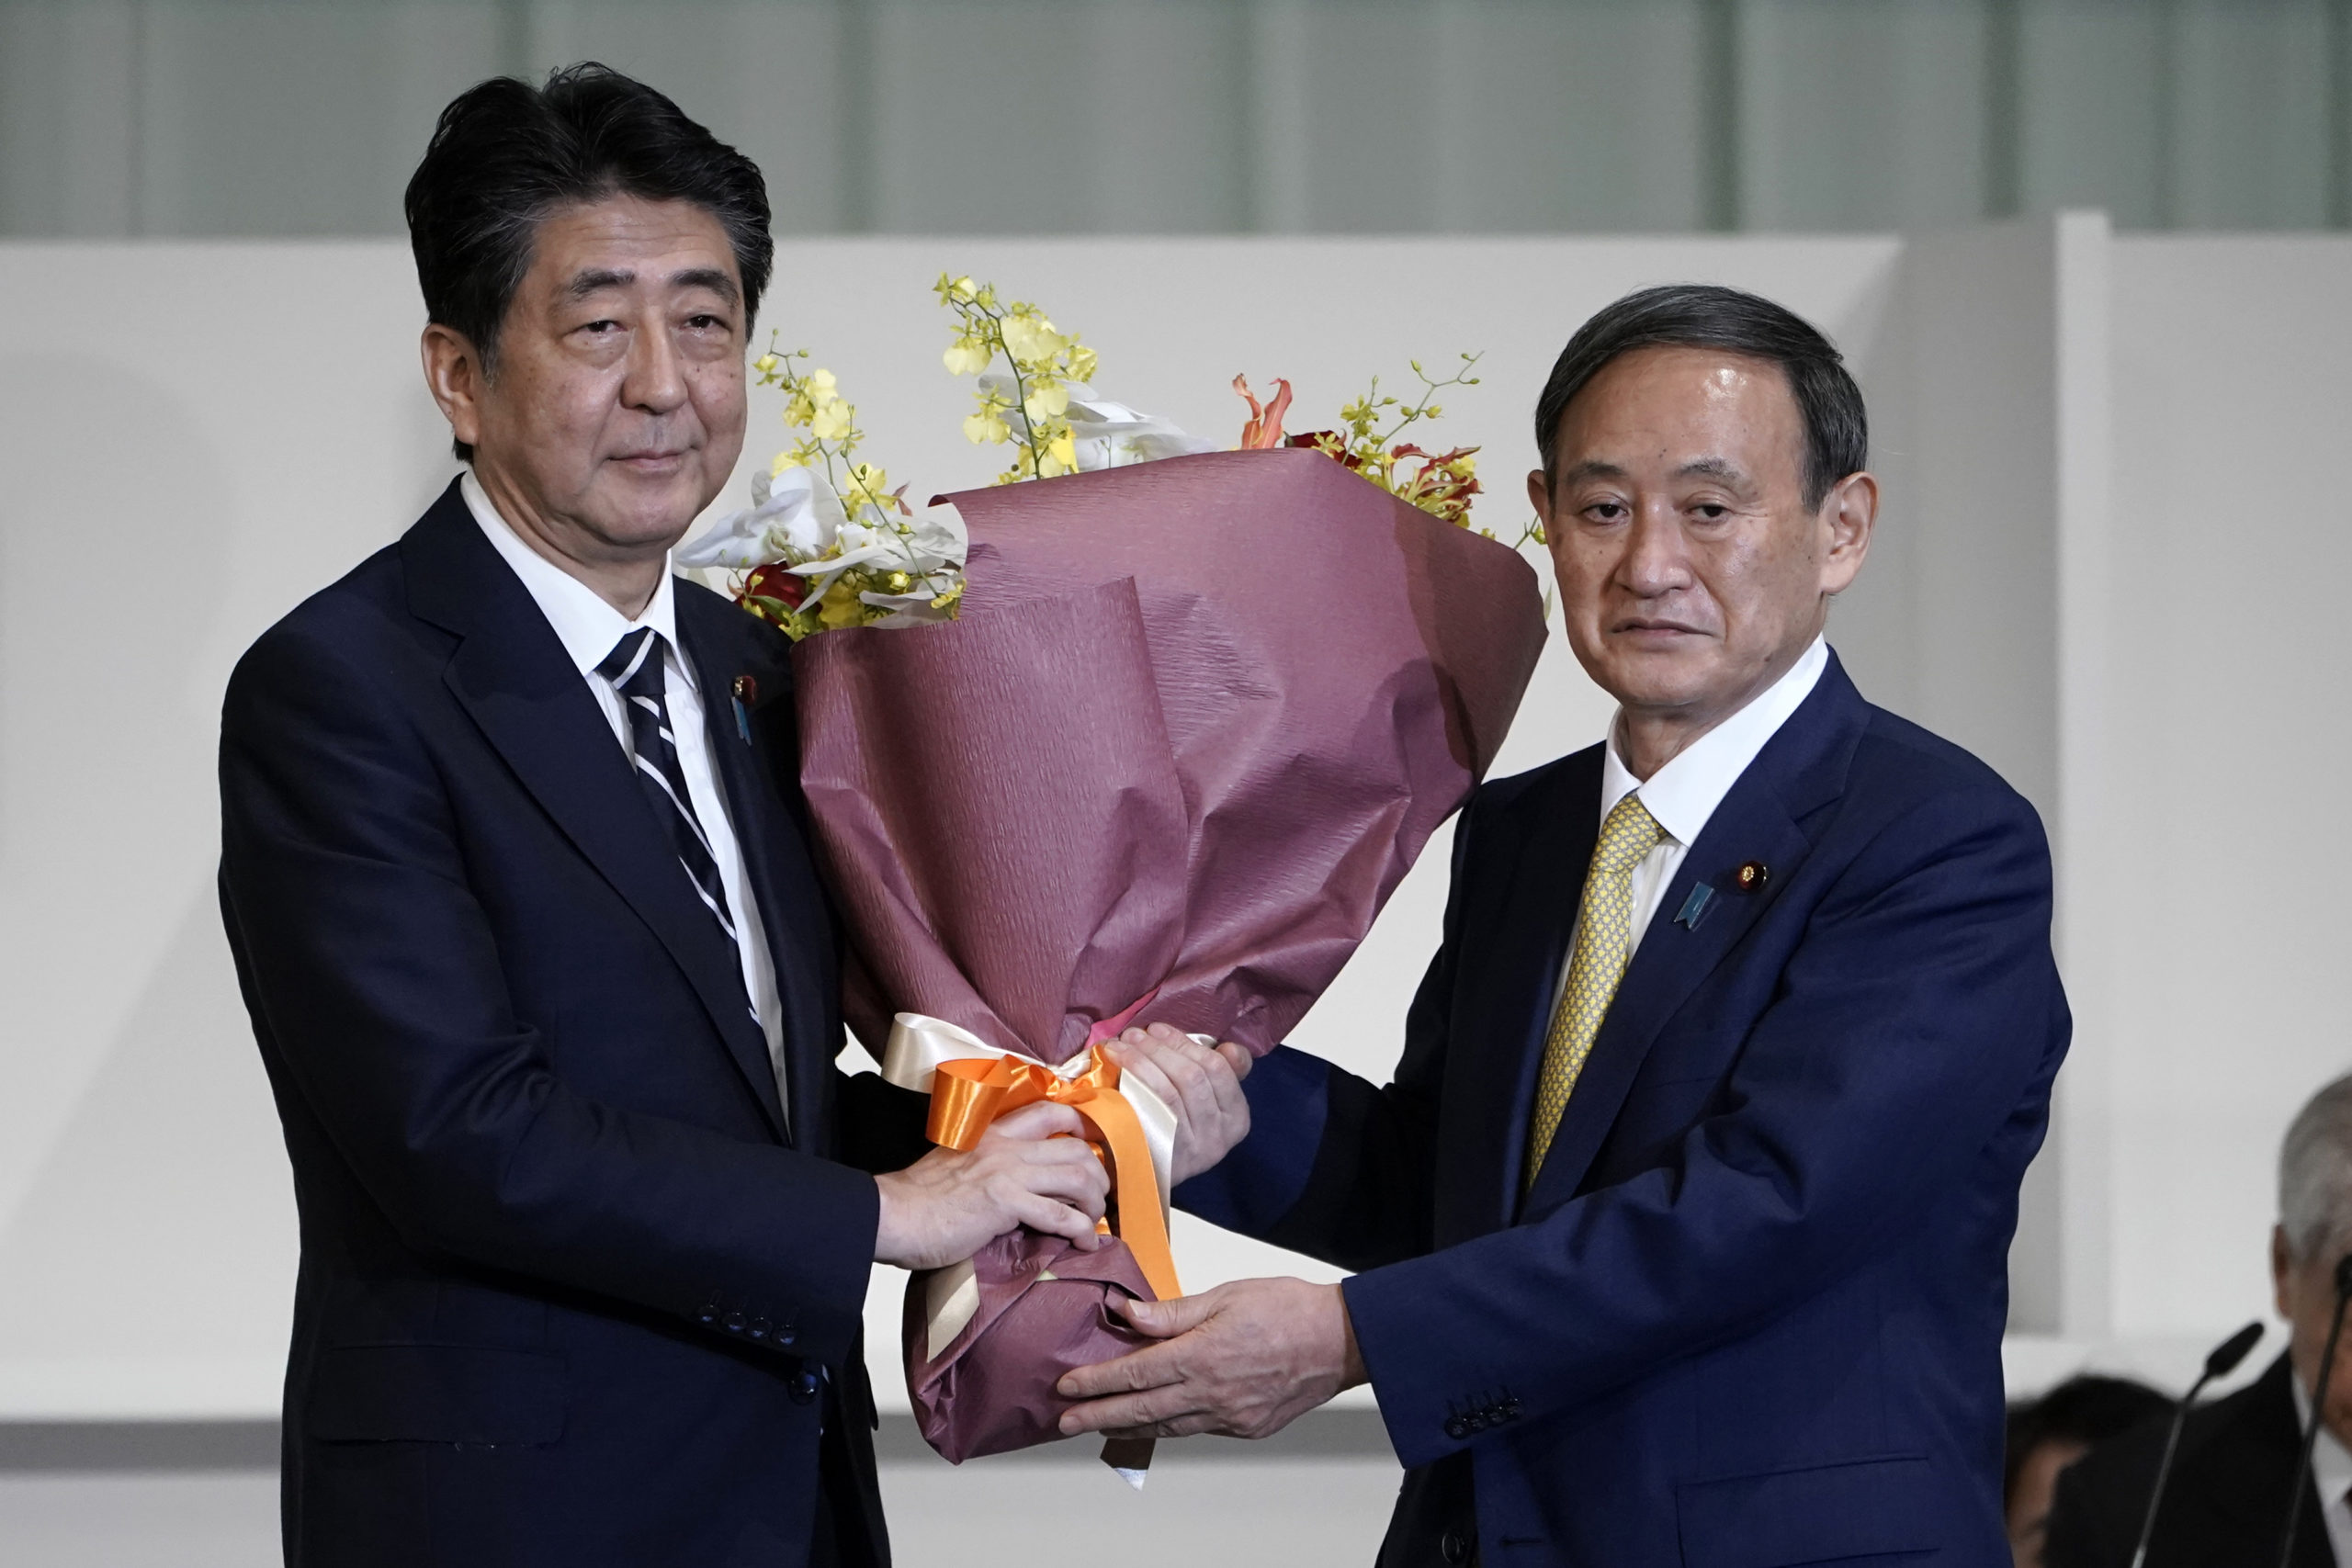 TOKYO, JAPAN - SEPTEMBER 14: Chief Cabinet Secretary Yoshihide Suga (R) presents flowers to Japan's Prime Minister Shinzo Abe after Suga was elected as new head of Japan's ruling party at the Liberal Democratic Party's (LDP) leadership election on September 14, 2020 in Tokyo, Japan. (Photo by Eugene Hoshiko - Pool/Getty Images)